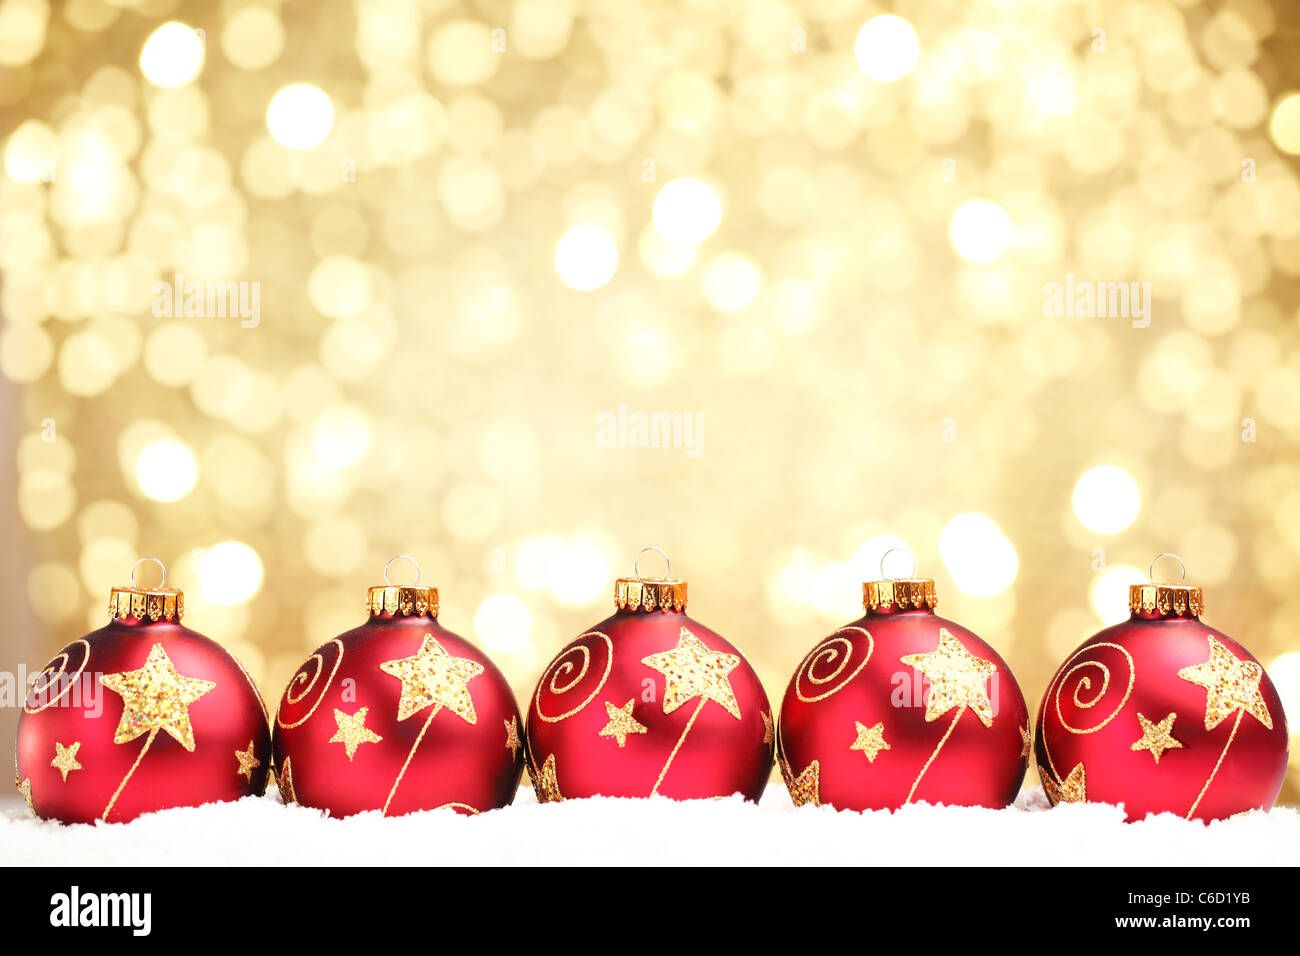 Row of shiny red christmas balls on abstract light background. - Stock Image